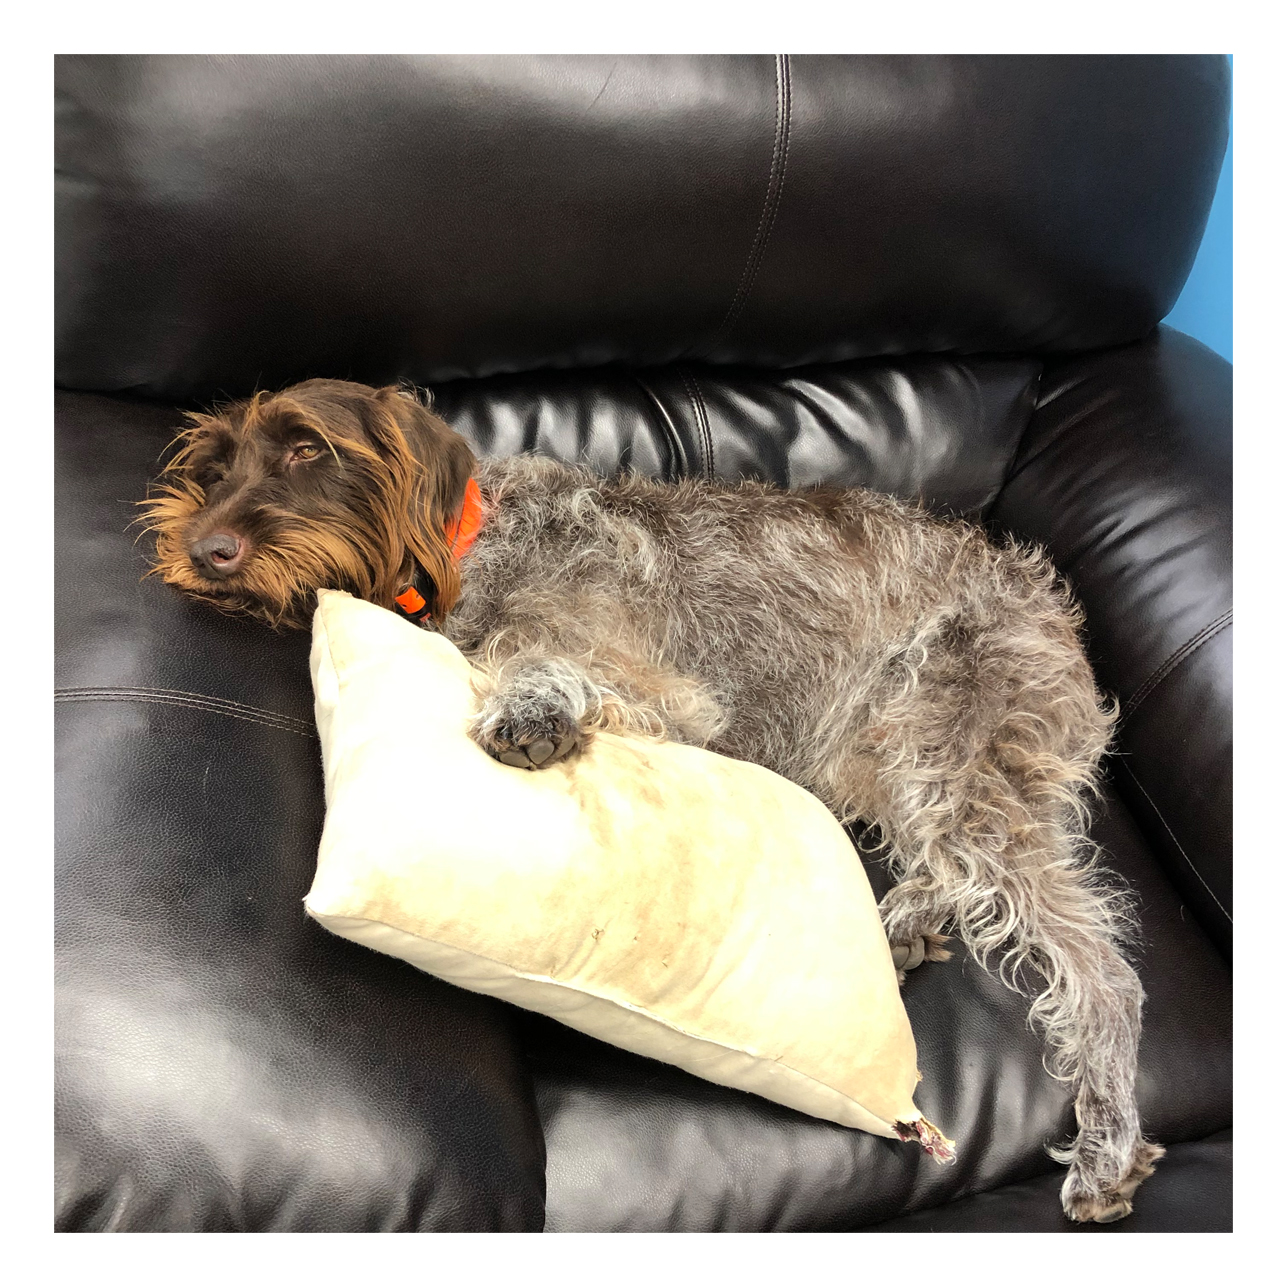 Maddie with Pillow